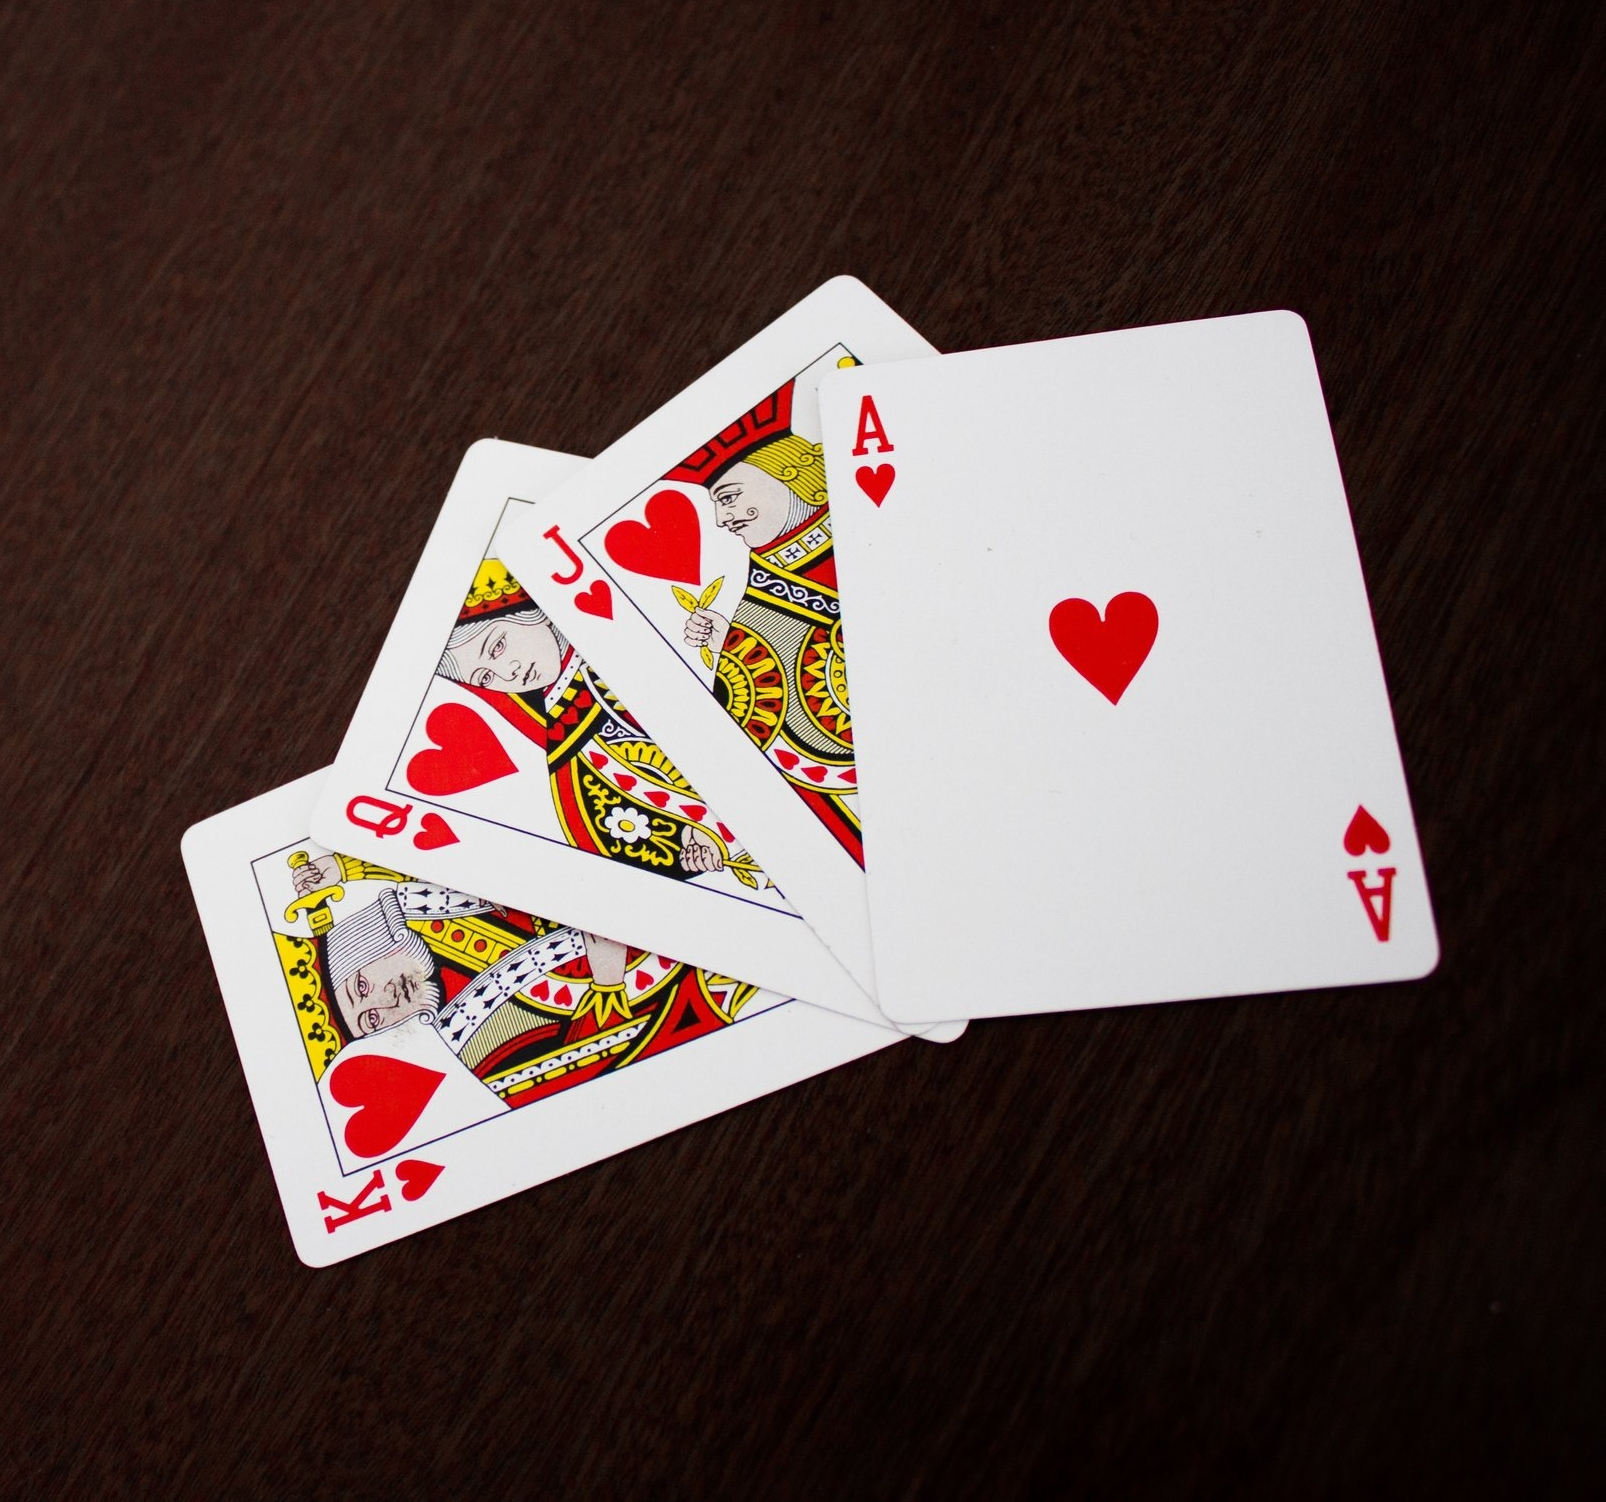 ace-card-game-cards-297507.jpg